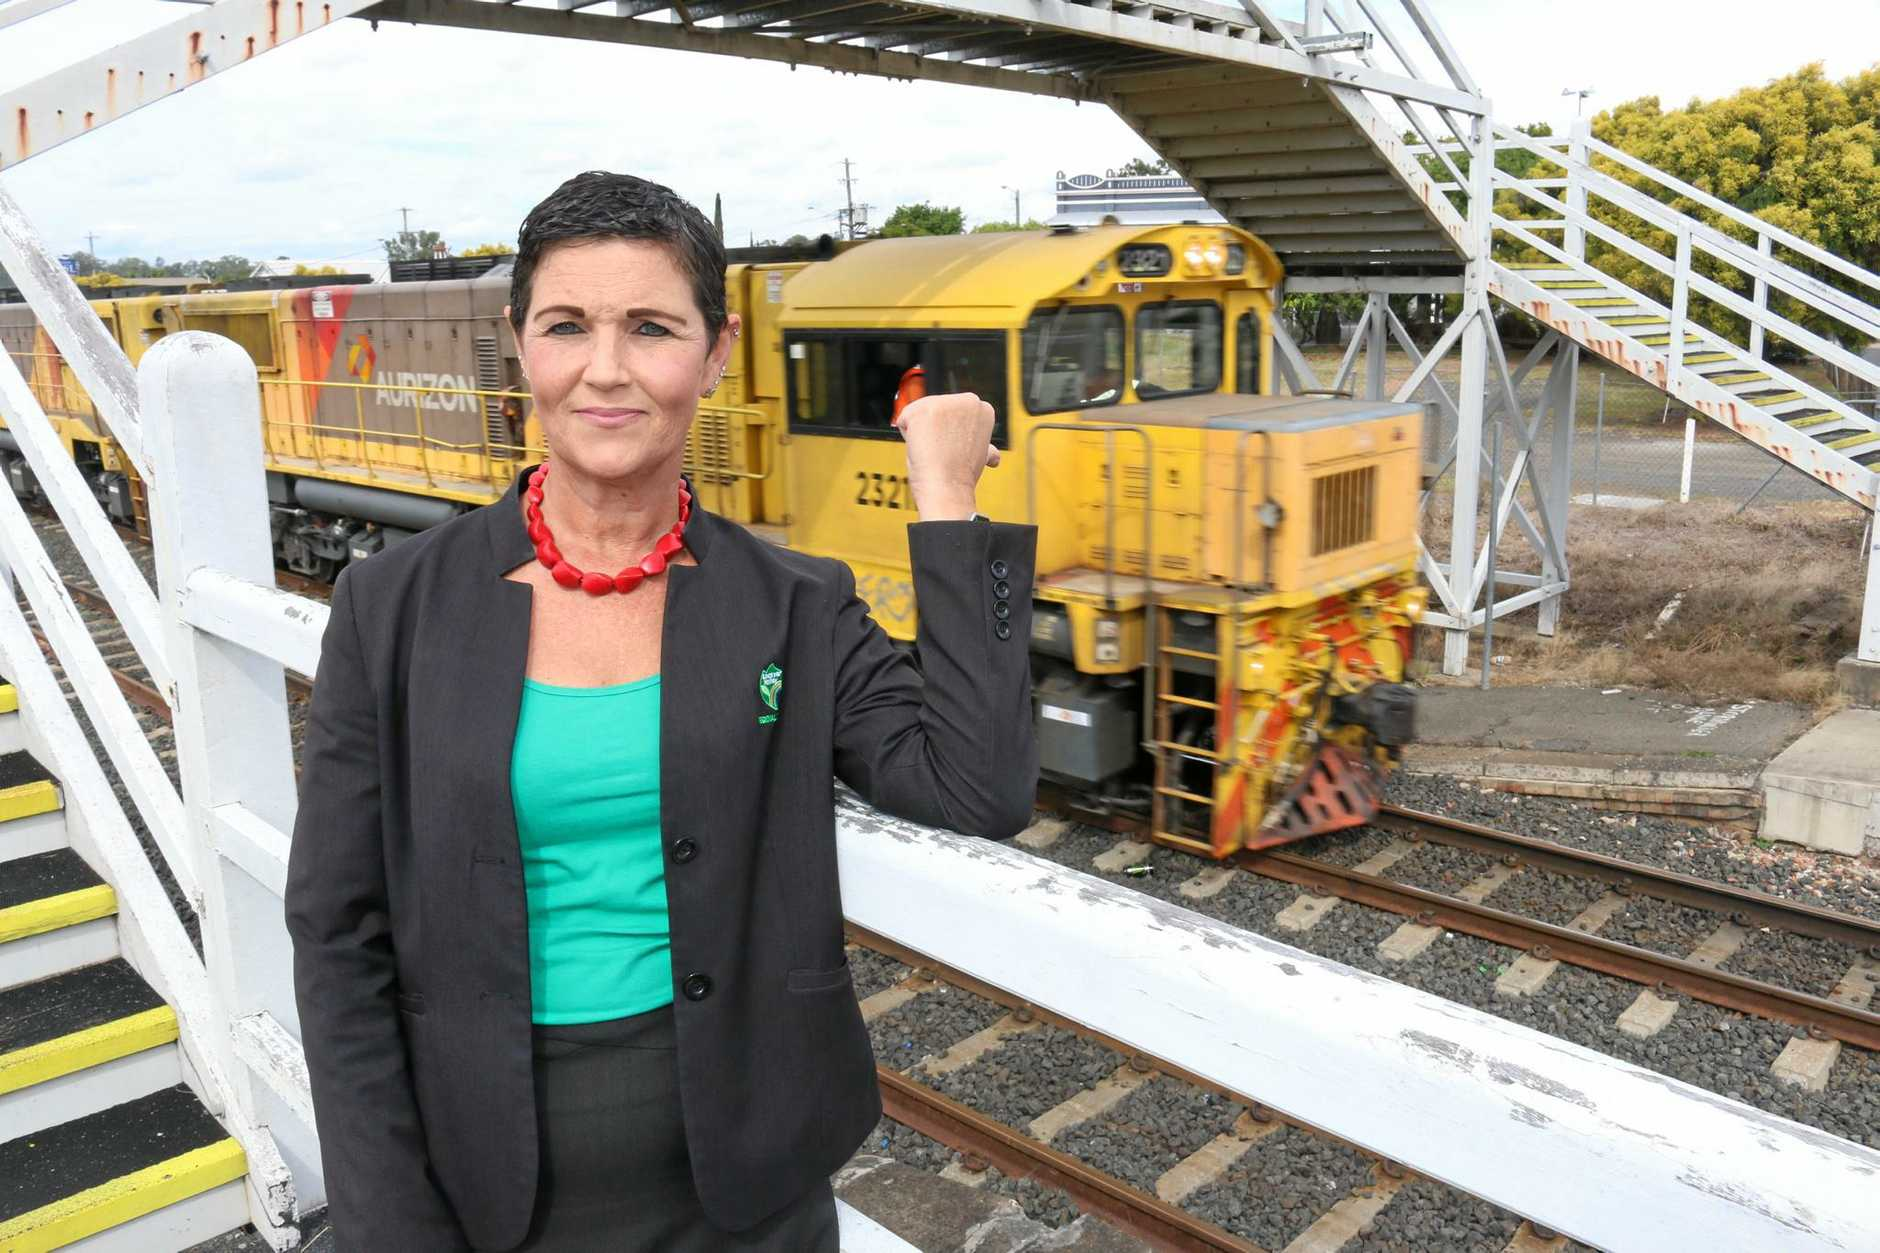 SPEAK UP: Lockyer Valley mayor Tanya Milligan is urging residents to have their say on the Melbourne to Brisbane Inland Rail project which will run through the Lockyer Valley.